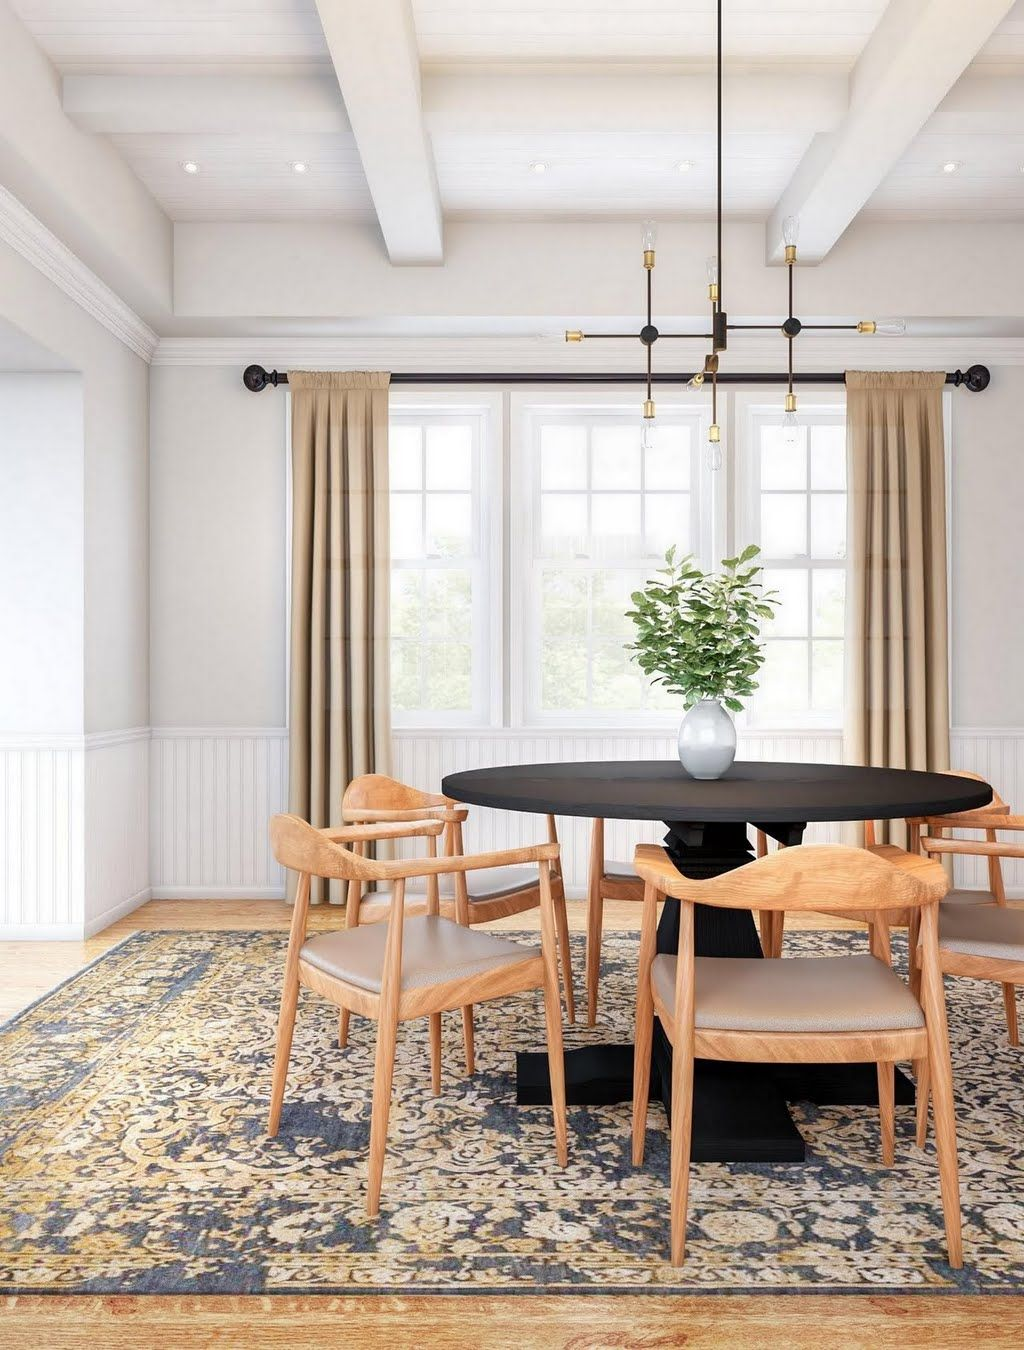 Shop our Dining Room Department to customize your Modern